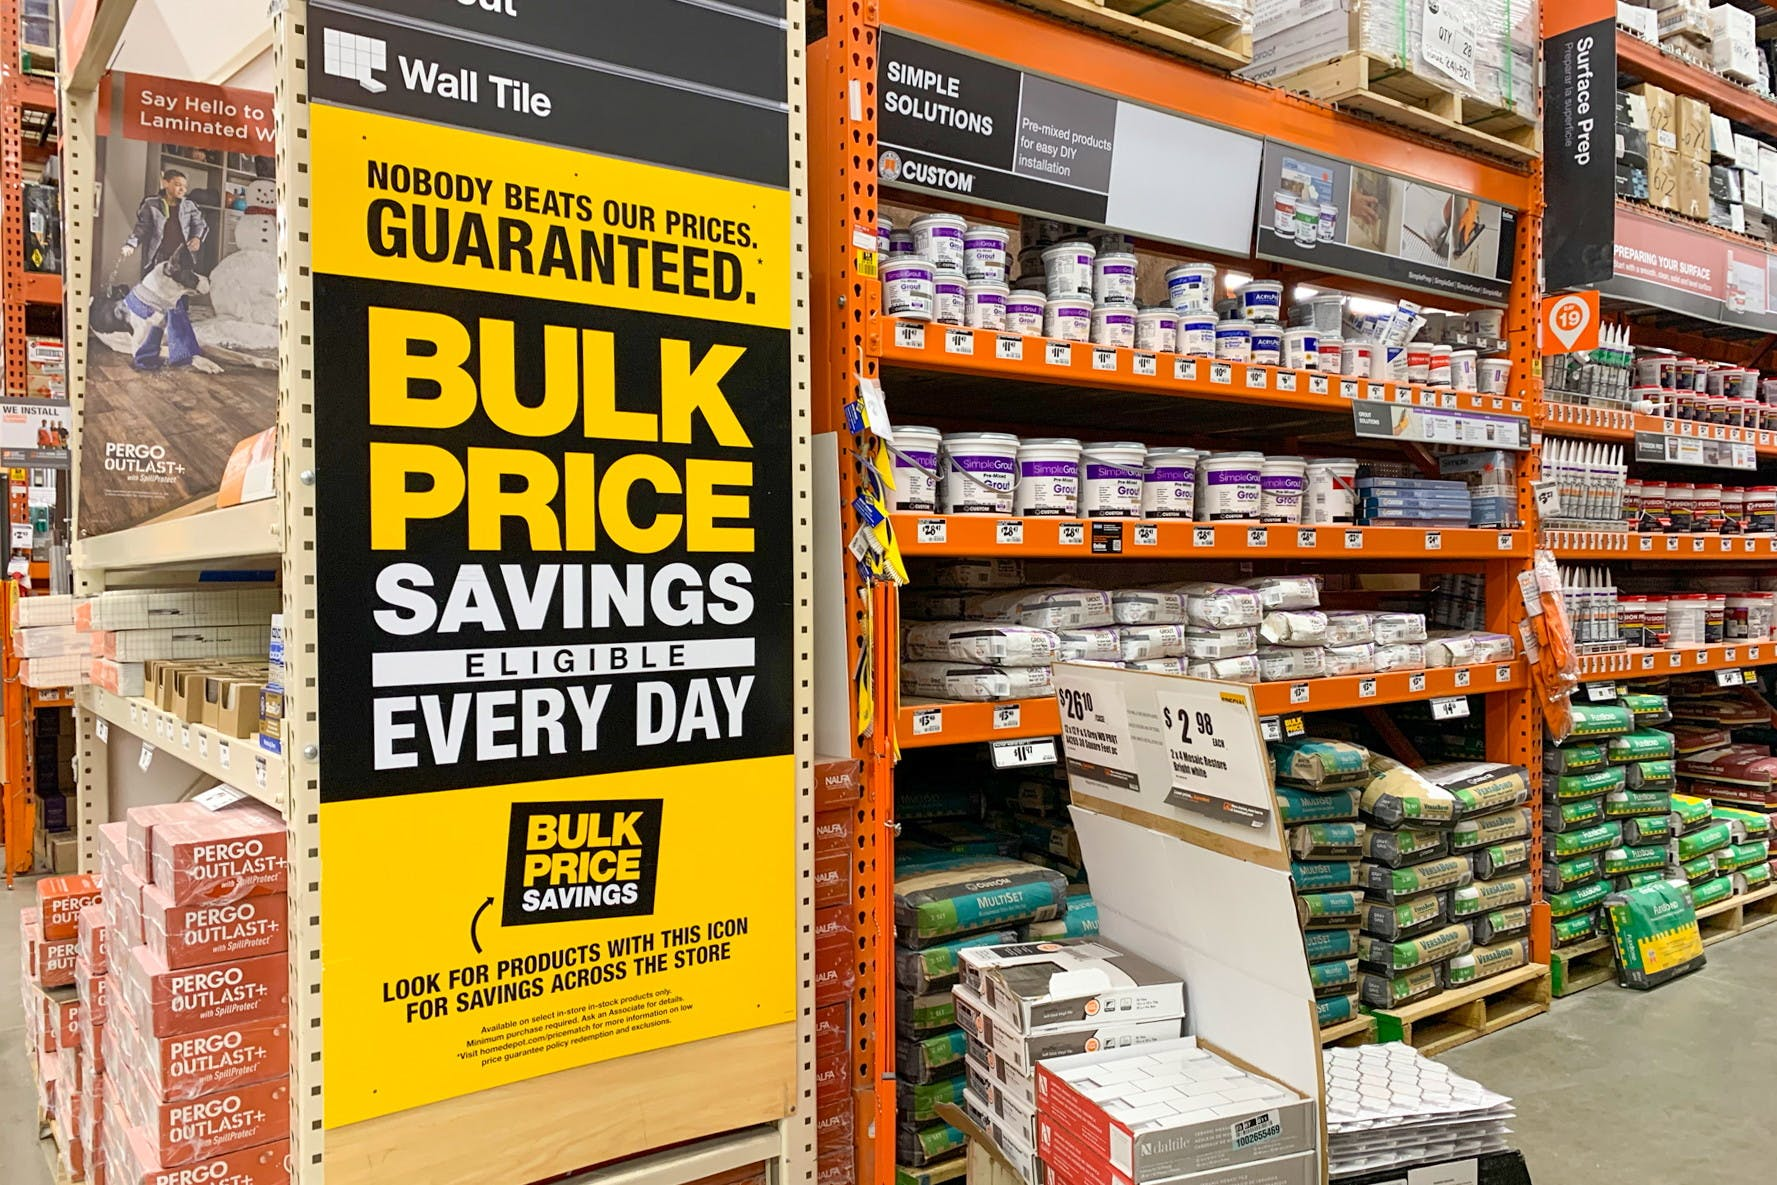 20 Home Depot Discounts You Need to Save Big   The Krazy Coupon Lady